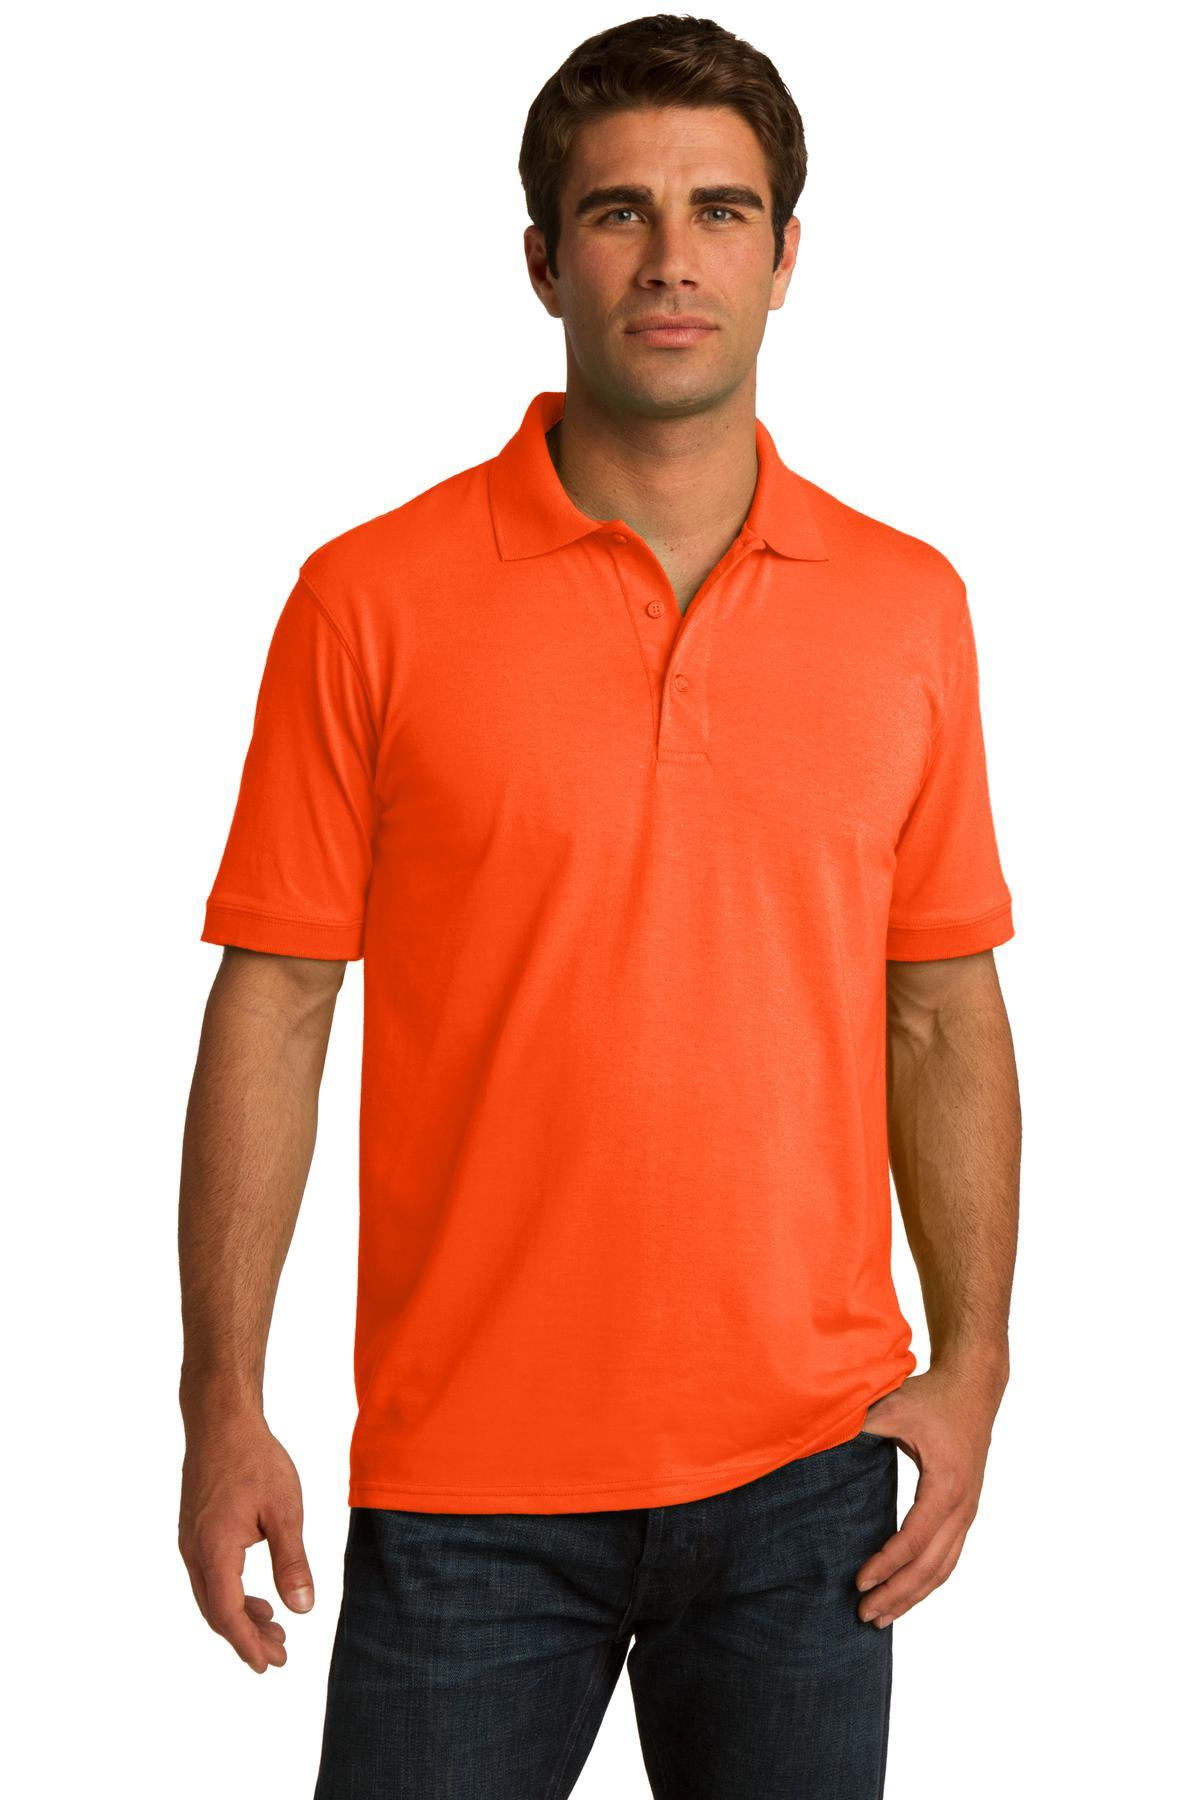 Safety Orange - Port & Company KP55T